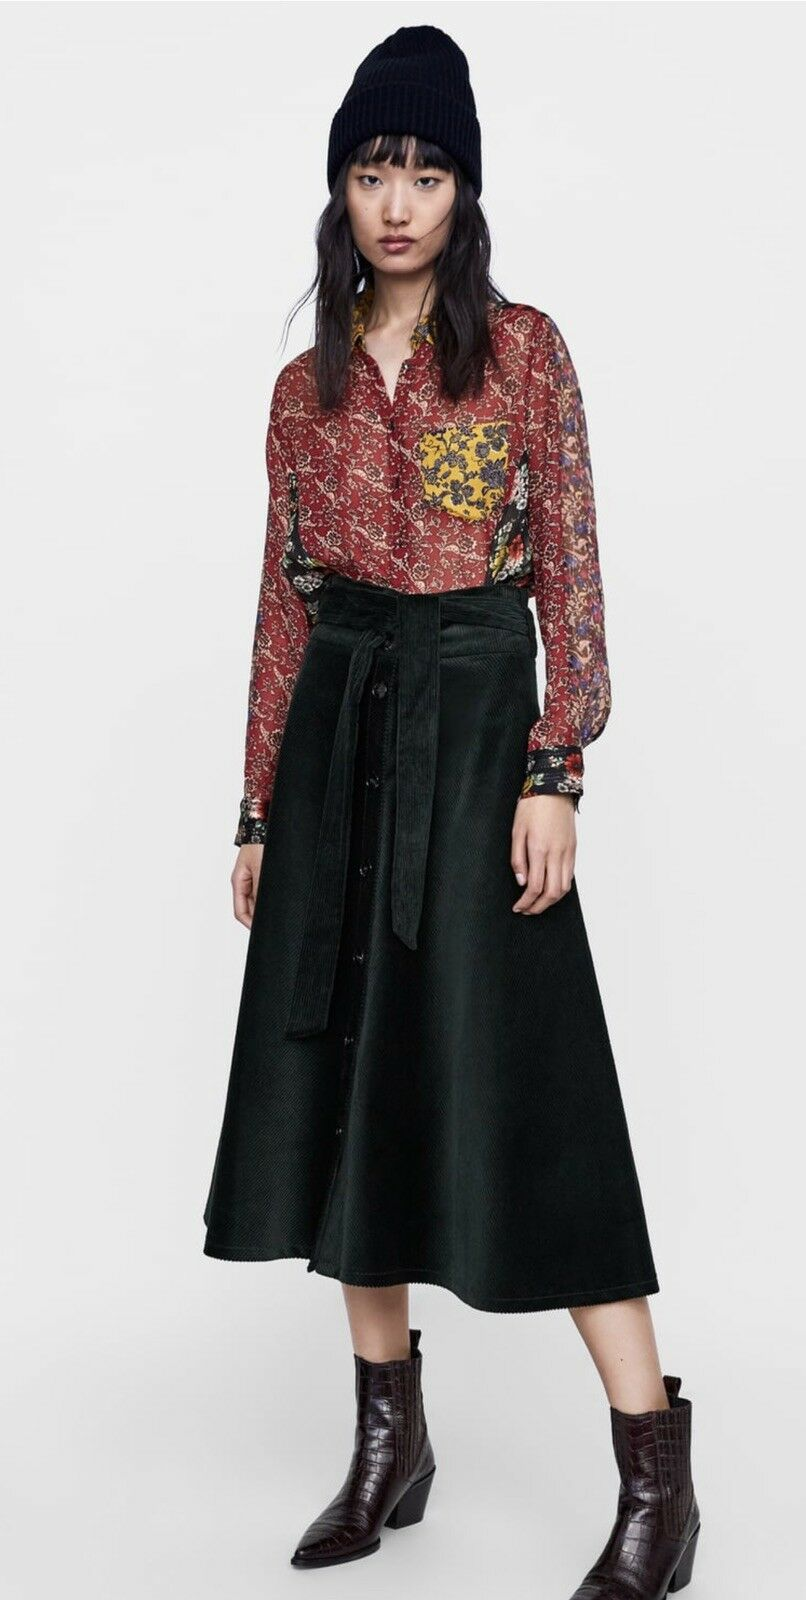 Zara Curduroy Skirt With Belt- Sold Out. Size Small